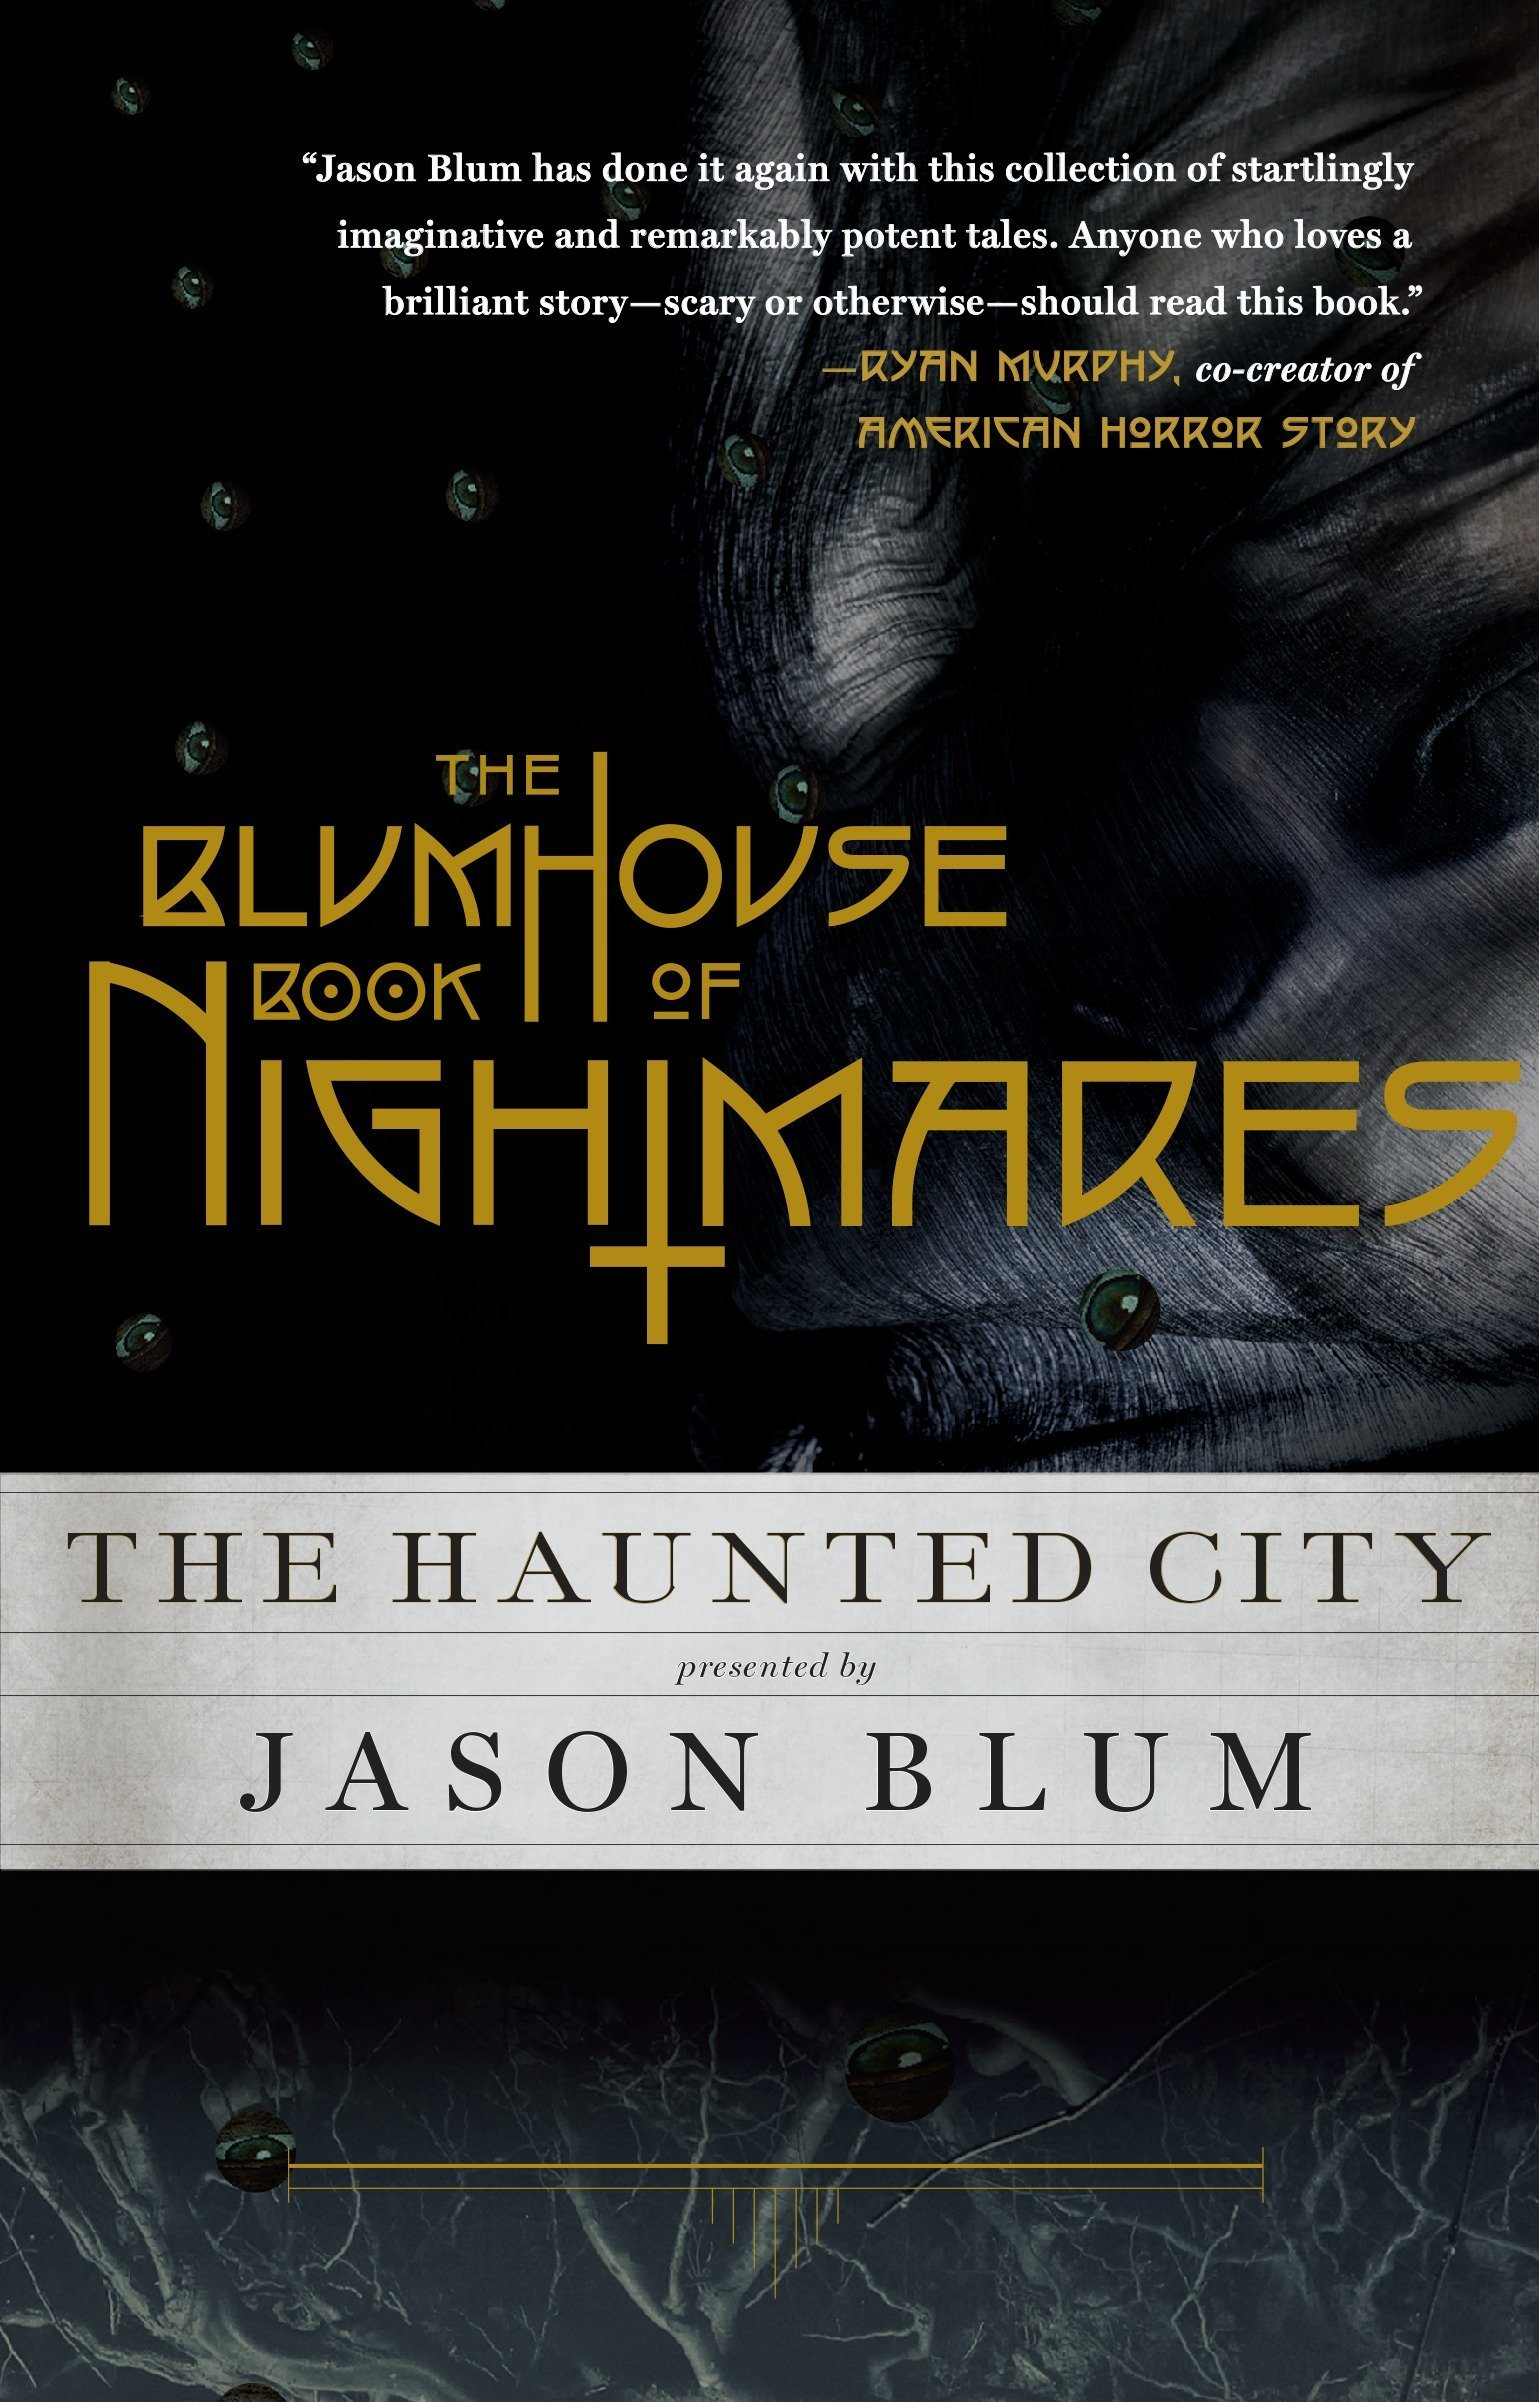 The Blumhouse Book of Nightmares: The Haunted City: Jason